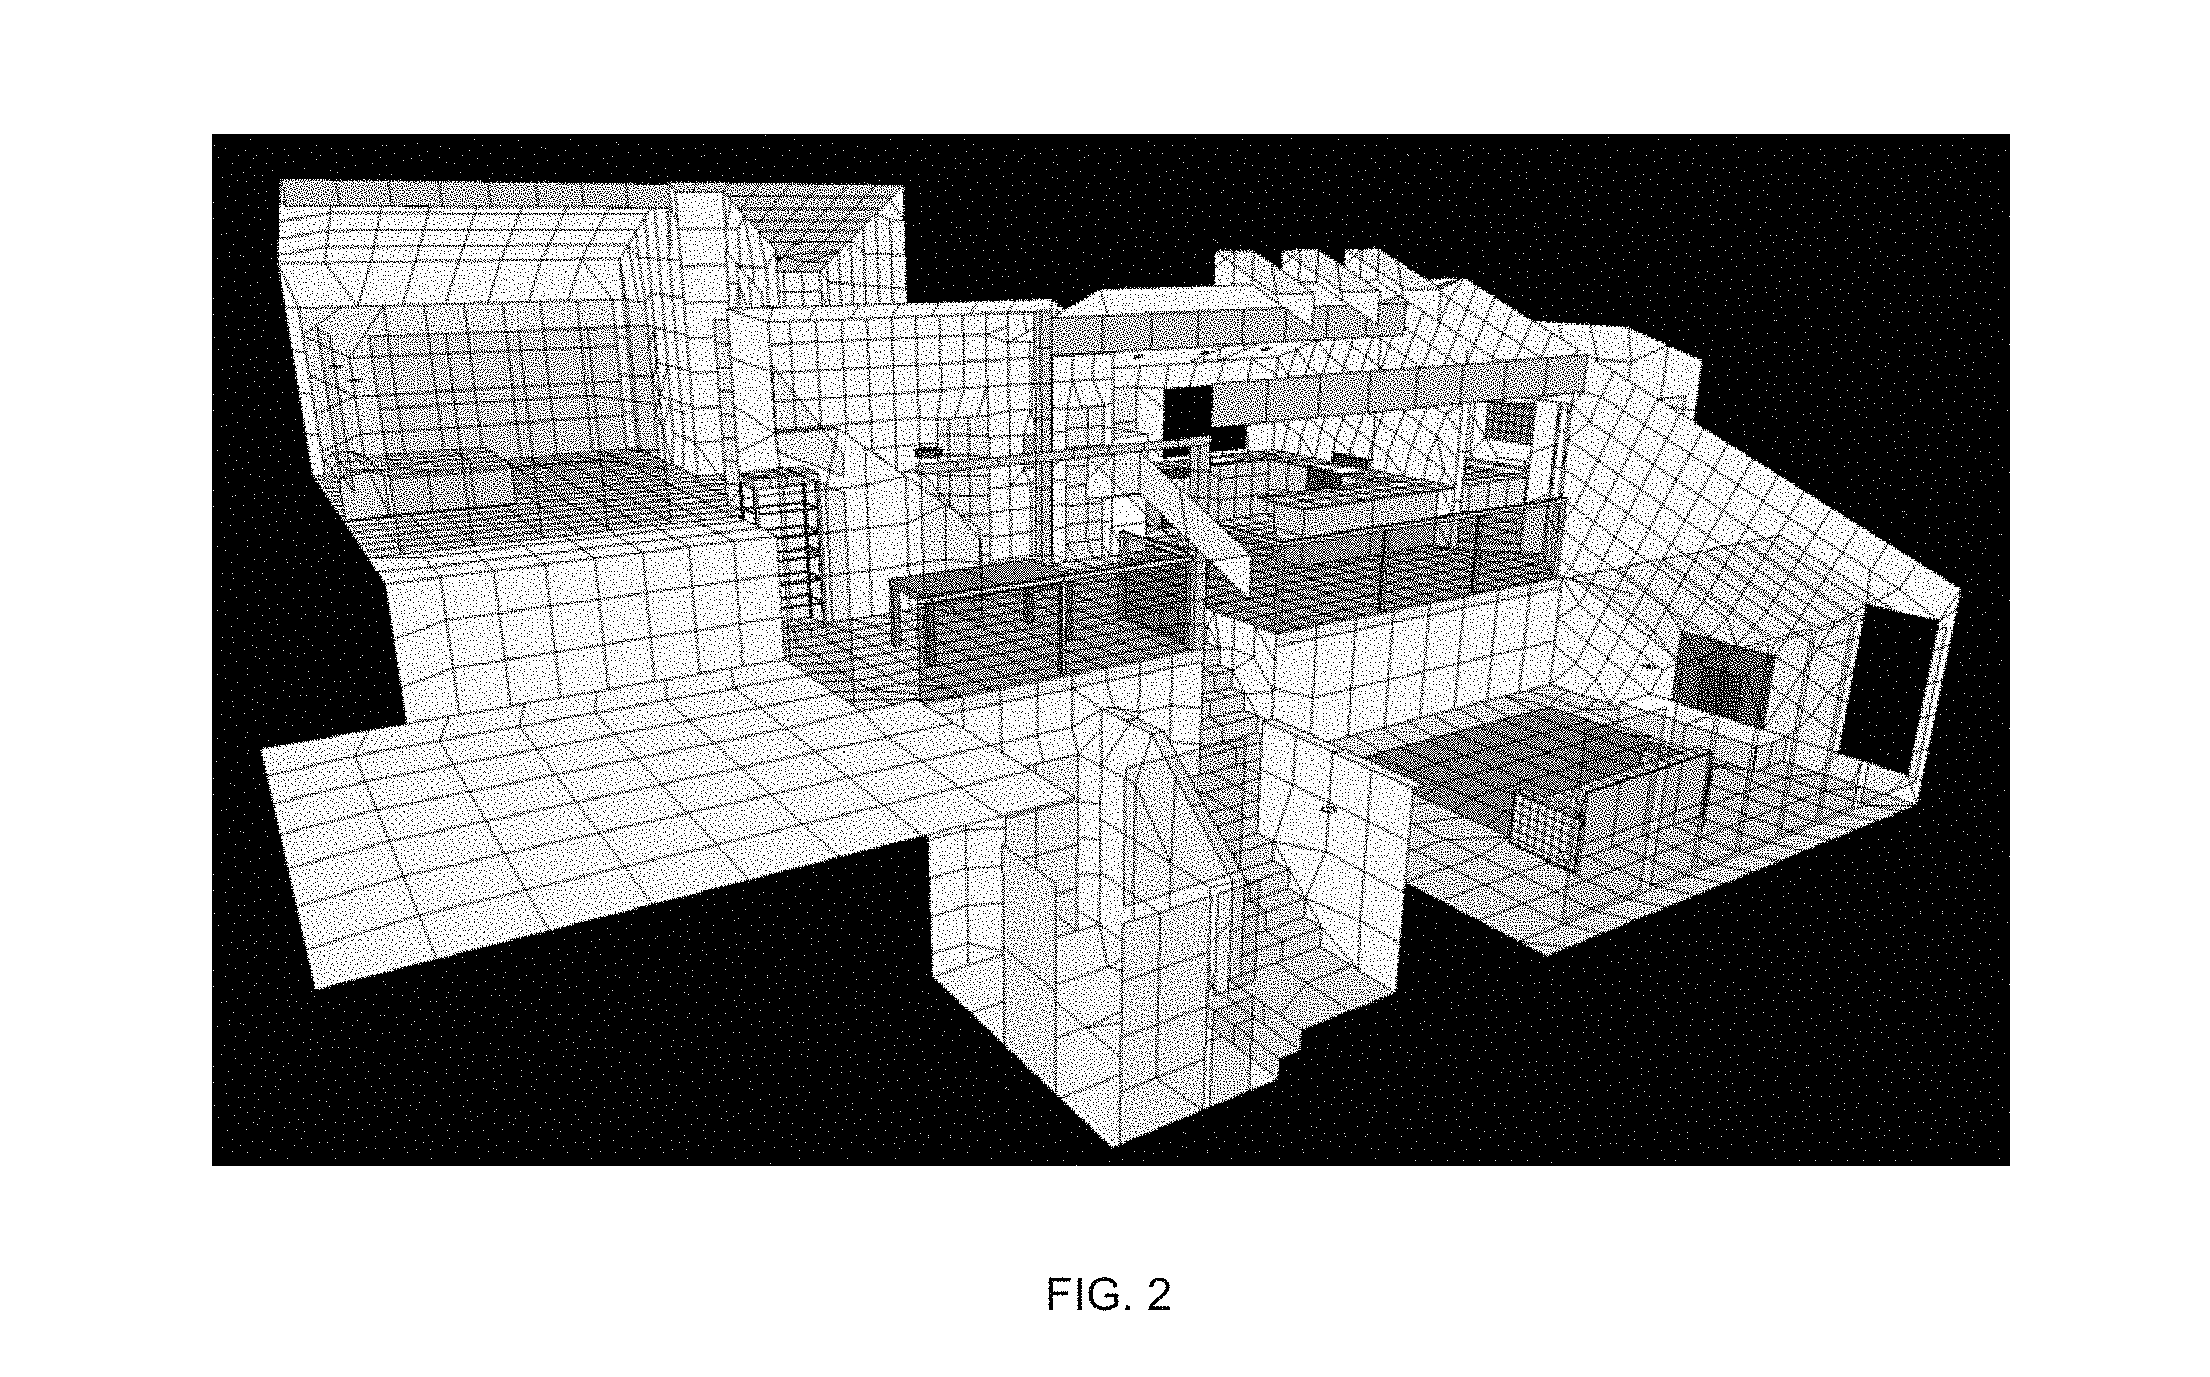 SYSTEM AND METHOD FOR THE OPTIMIZATION OF  RADIANCE MODELLING AND CONTROLS IN  PREDICTIVE DAYLIGHT HARVESTING